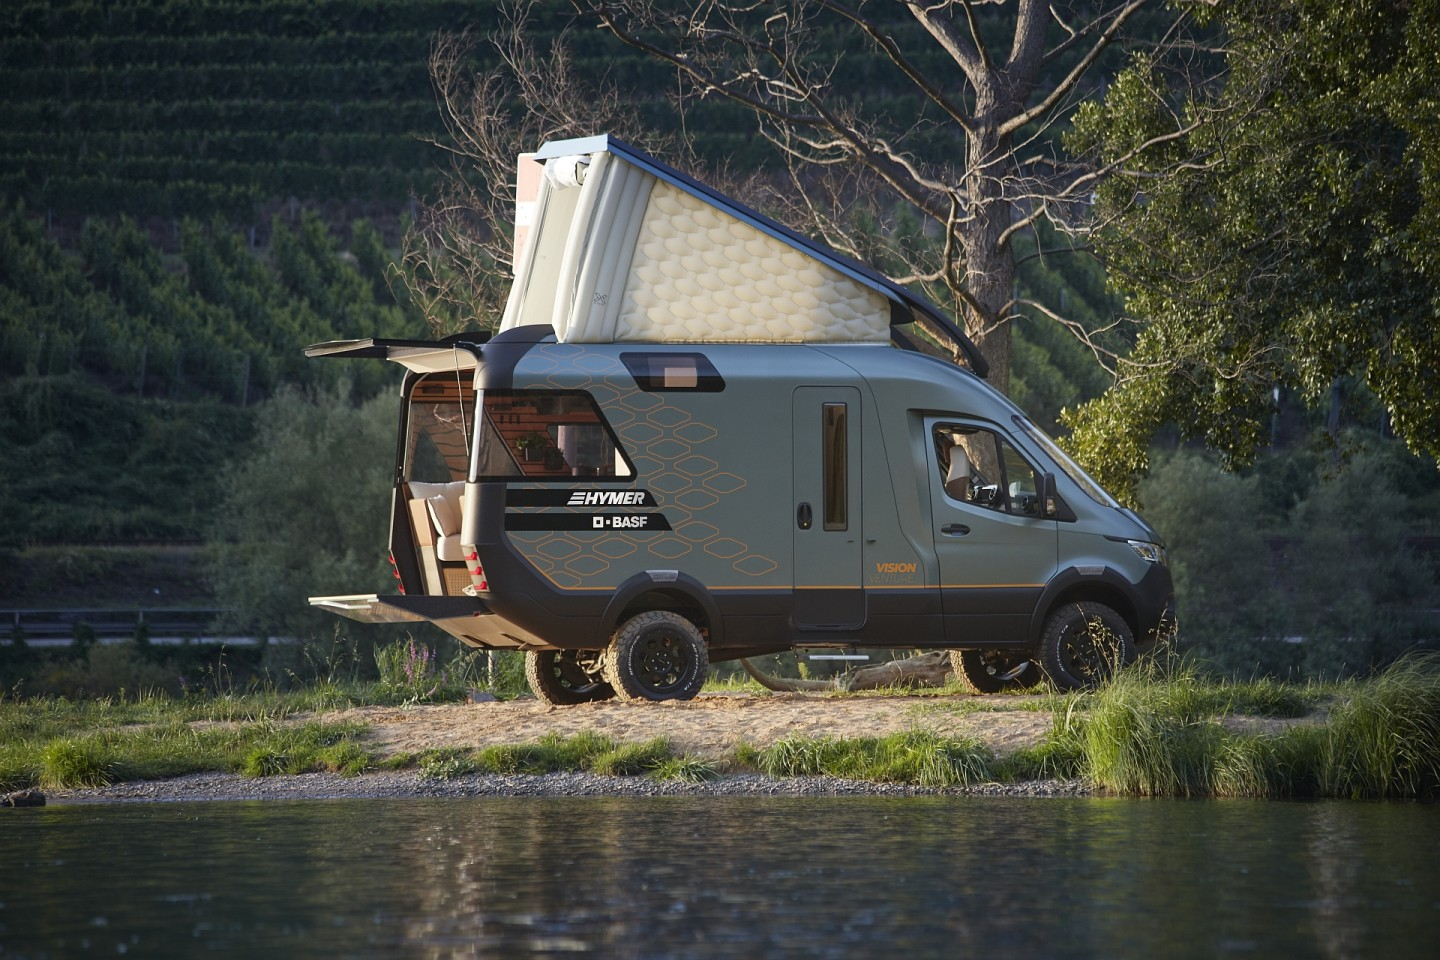 A modern camper van sits by a lake. The camper van boasts an open back door with small deck and a white pop-up sleeping area on the roof.